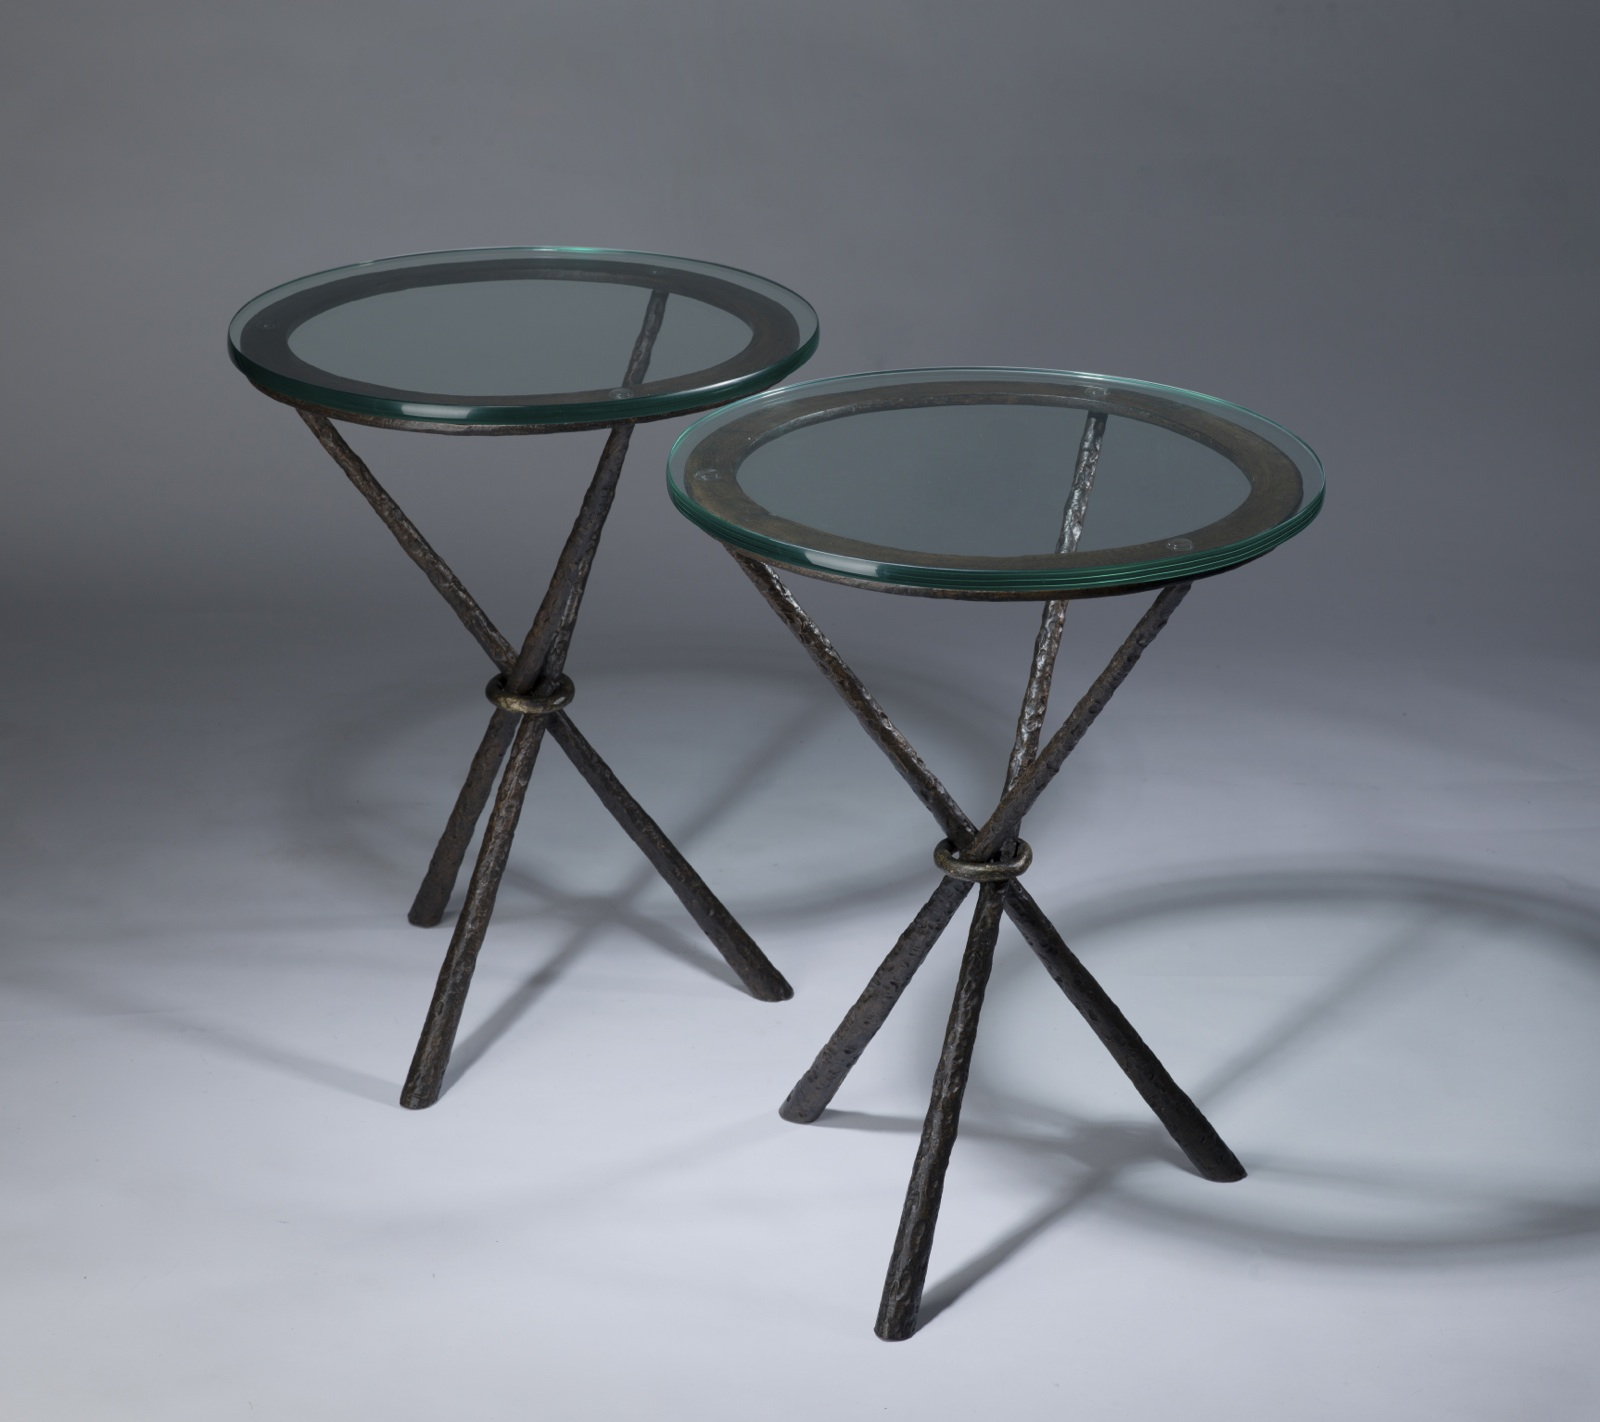 wrought iron tripod side table in